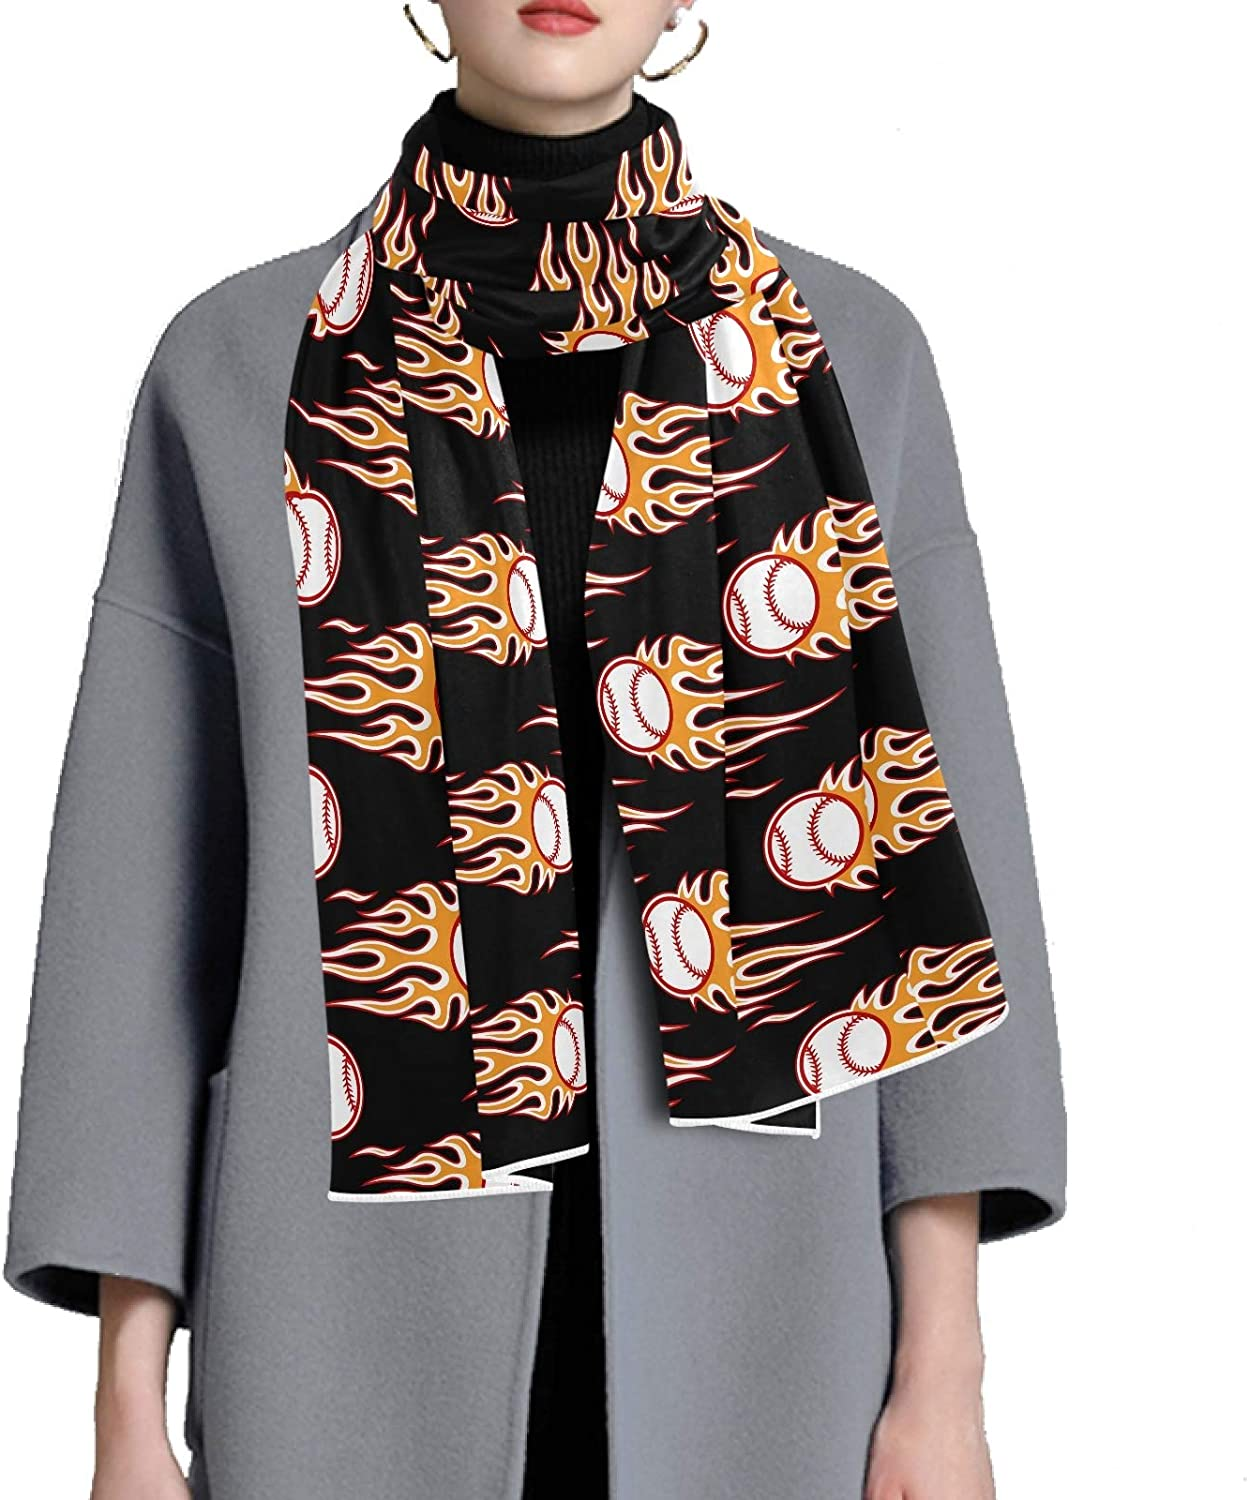 Scarf for Women and Men Baseball Softball Balls Fire Blanket Shawl Scarf wraps Thick Soft Winter Large Scarves Lightweight